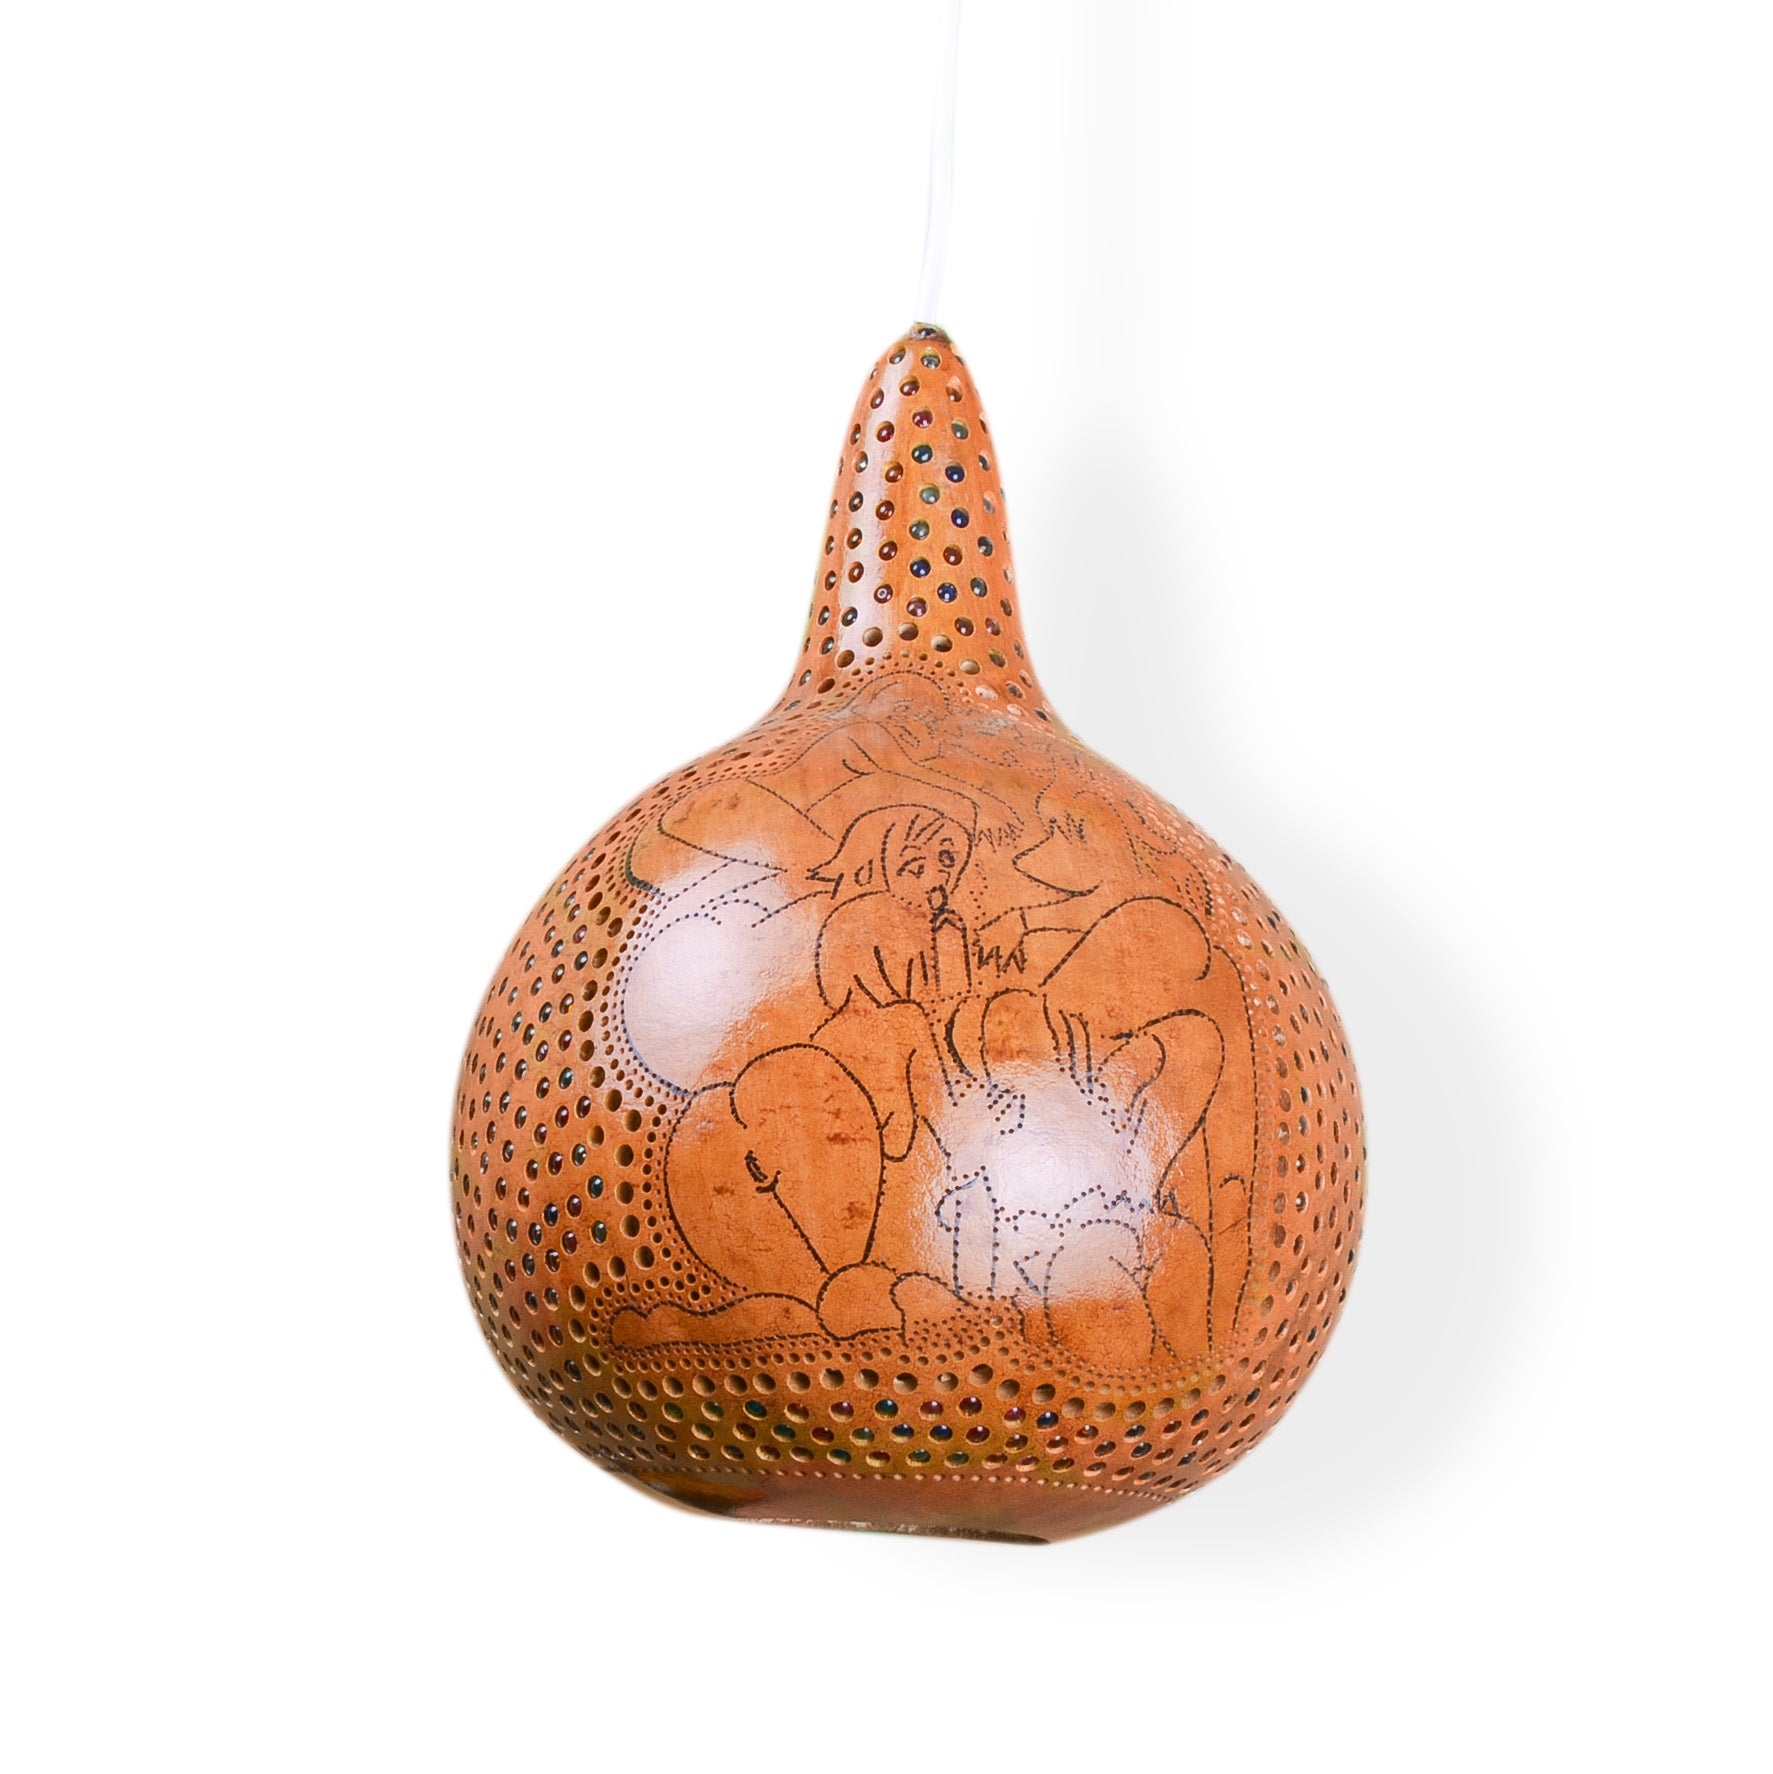 Lost in Amsterdam handmade carved pumpkin lamp kamasutra sexy scene